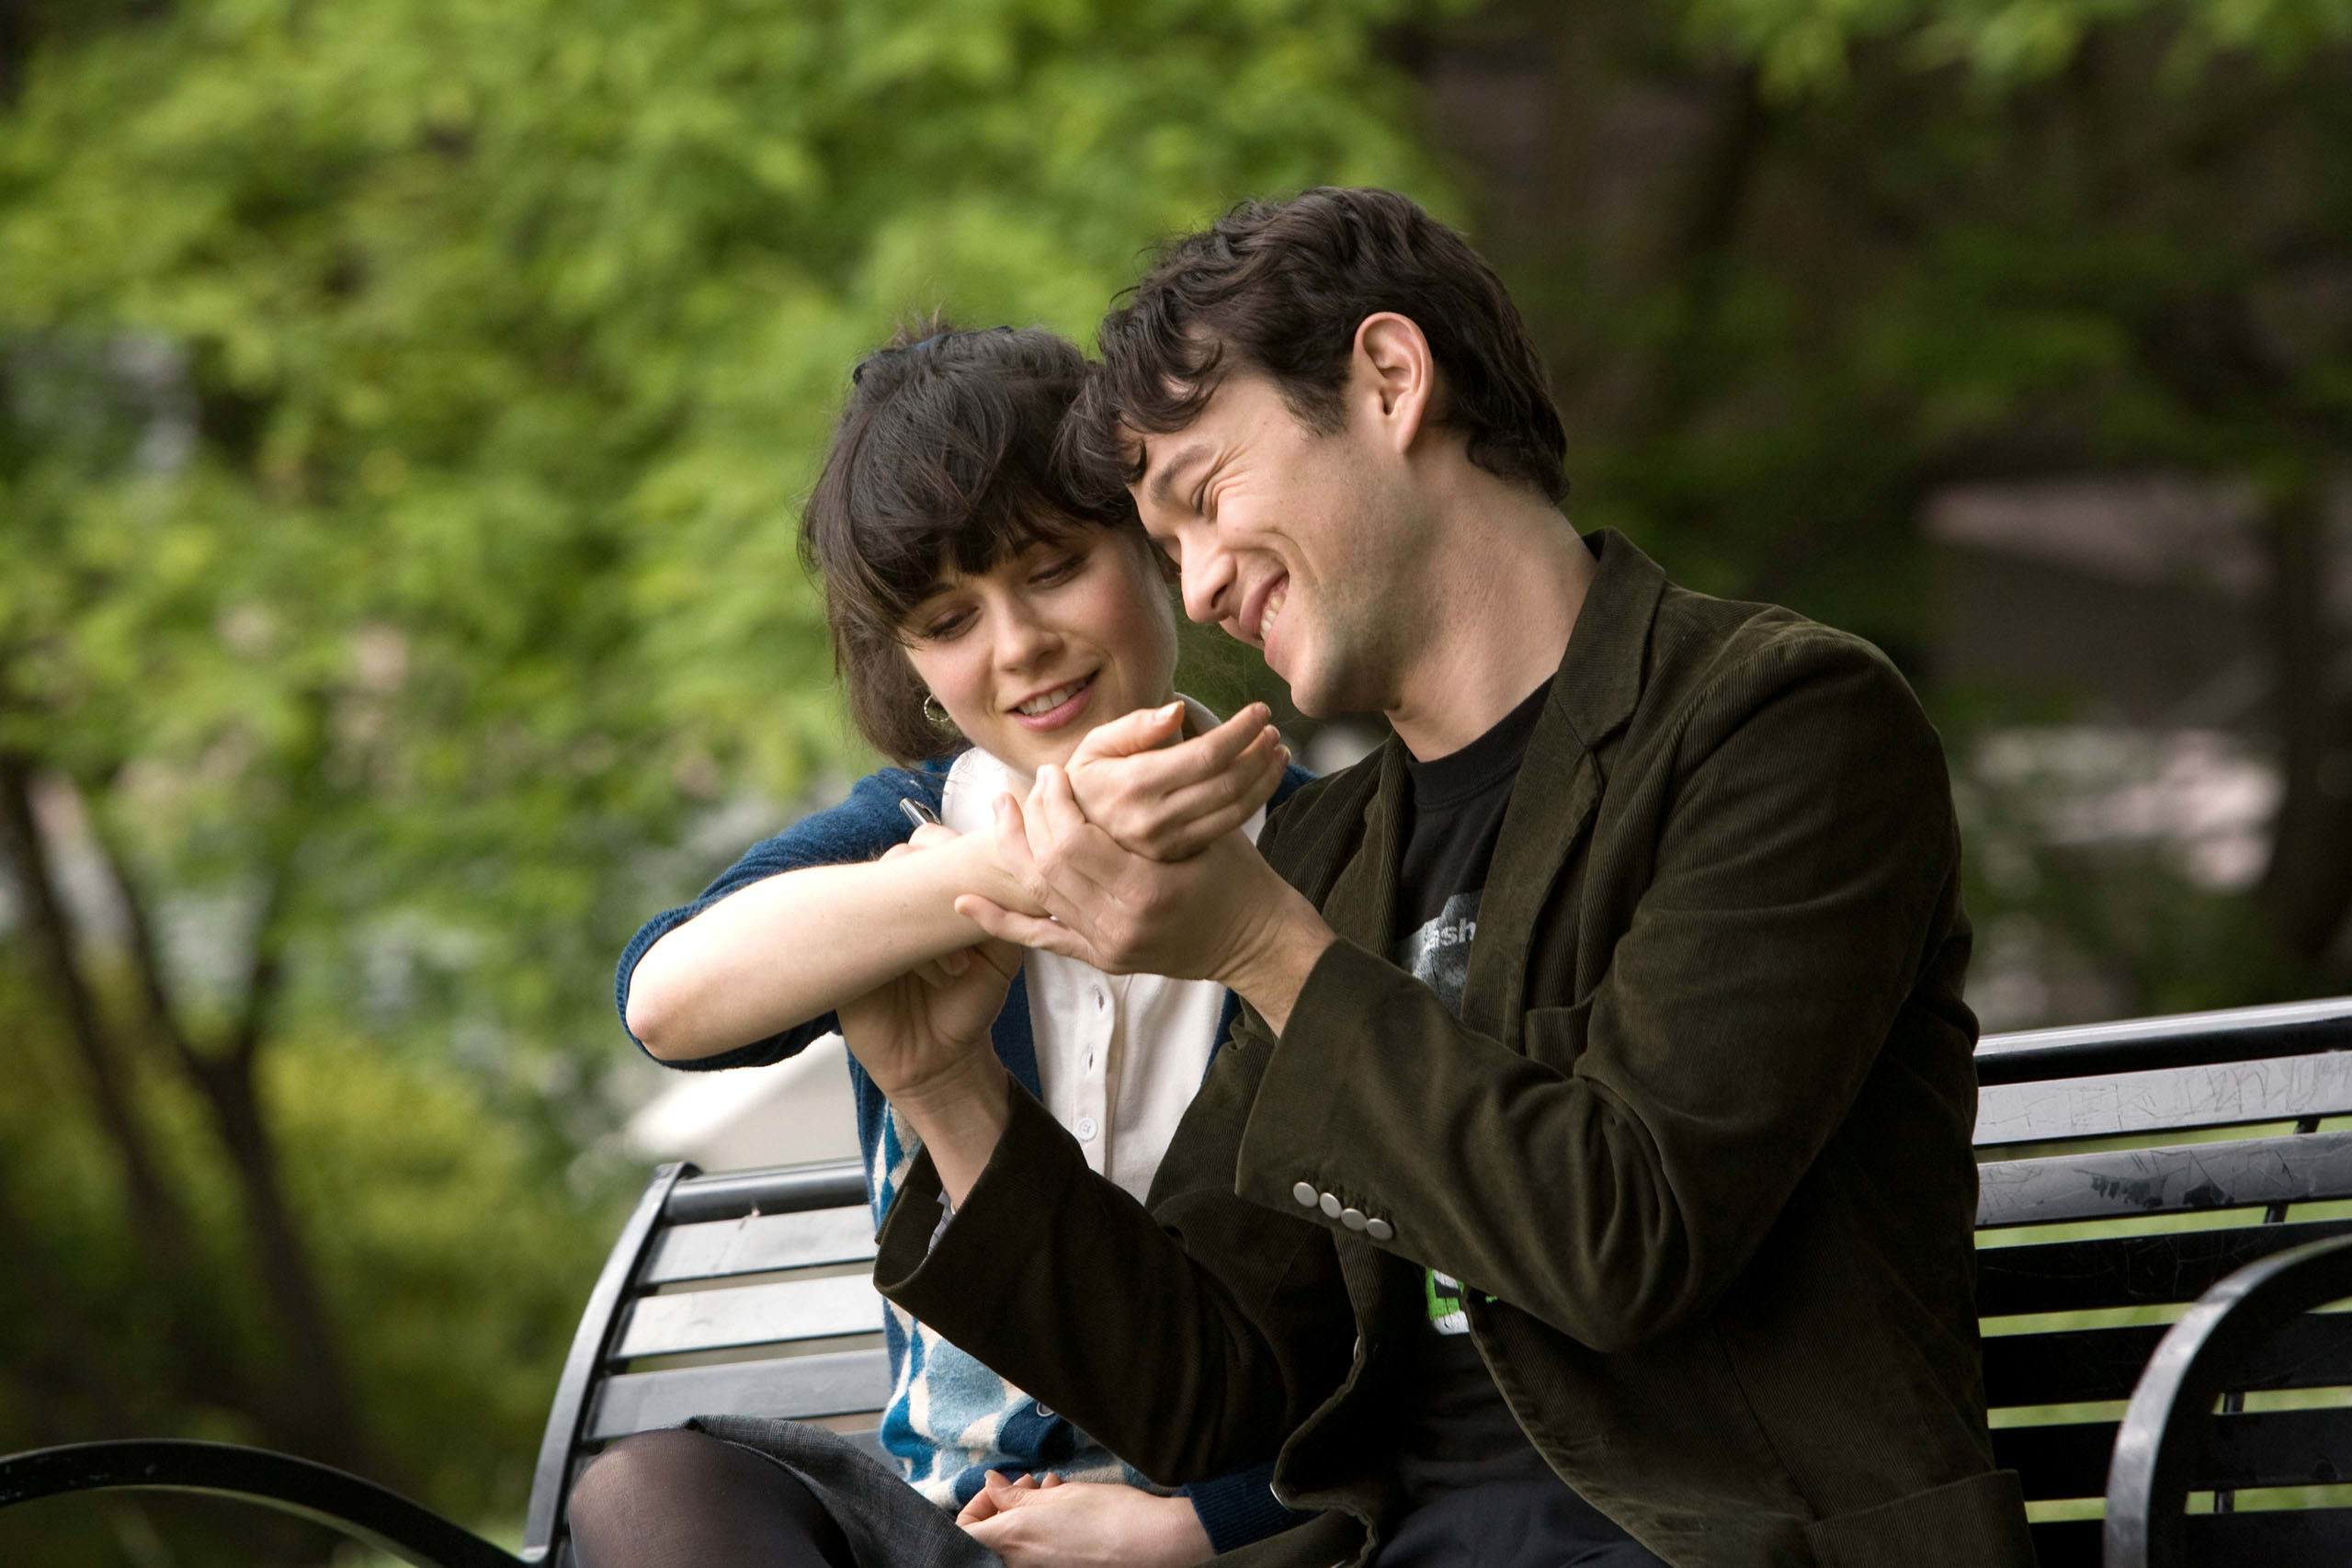 500 Days Of Summer Wallpapers 1080p 8286V3X   4USkY 2559x1706